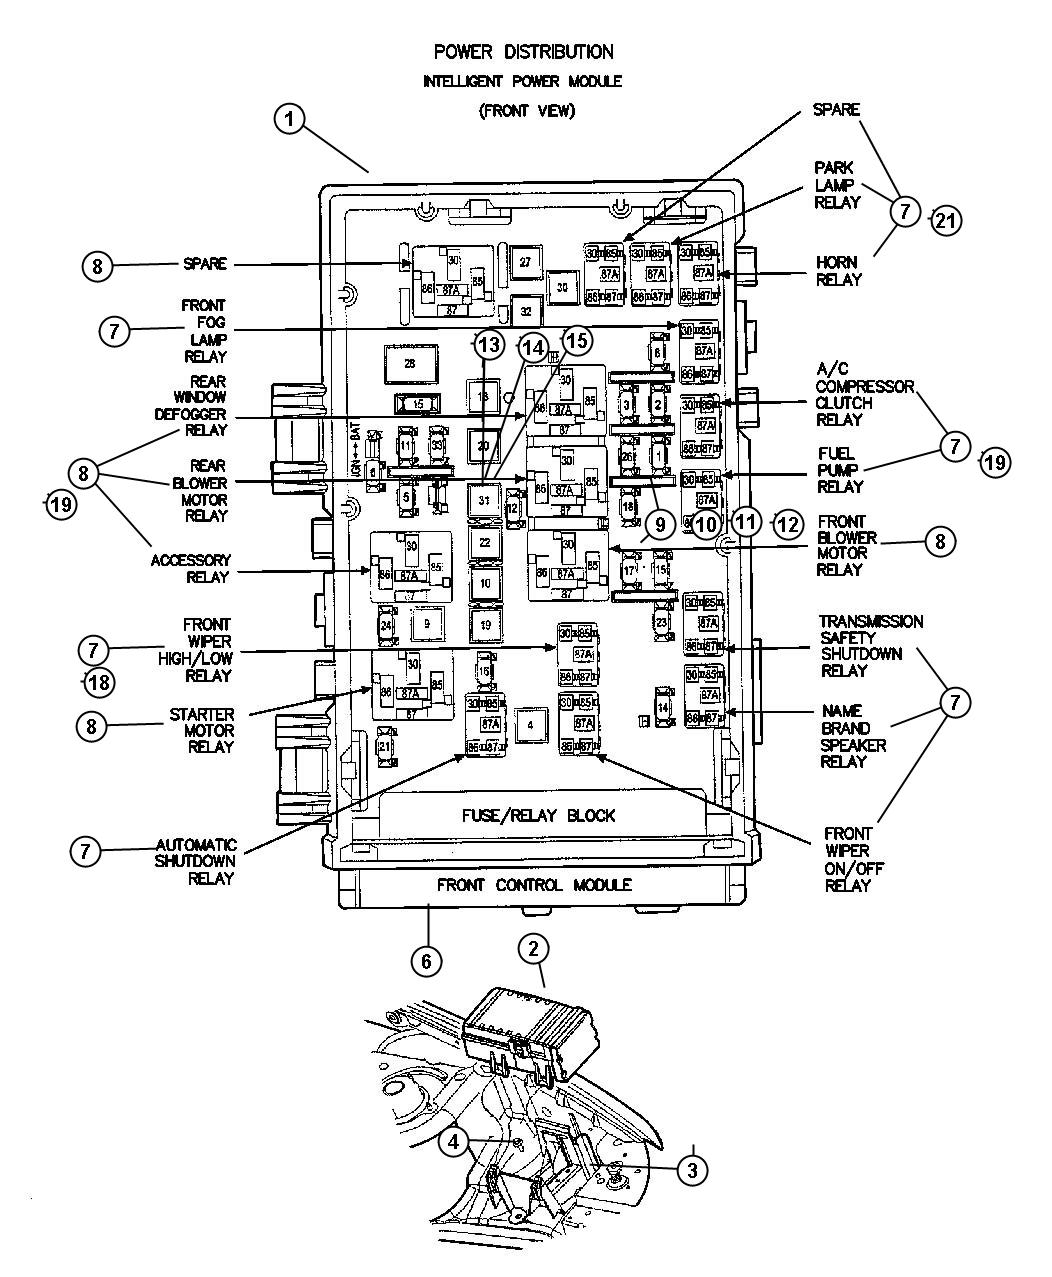 2011 Dodge Nitro Fuse Diagram